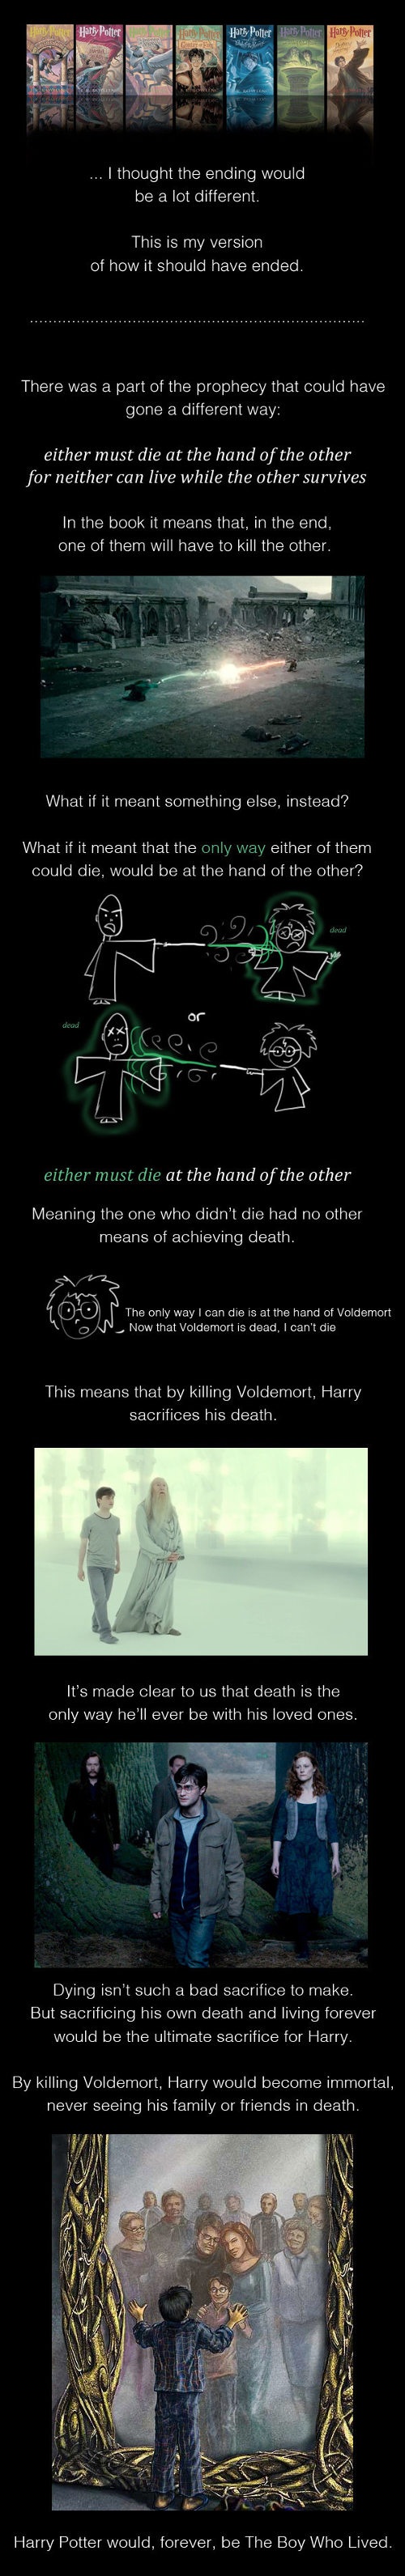 How Harry Potter Should Have Ended